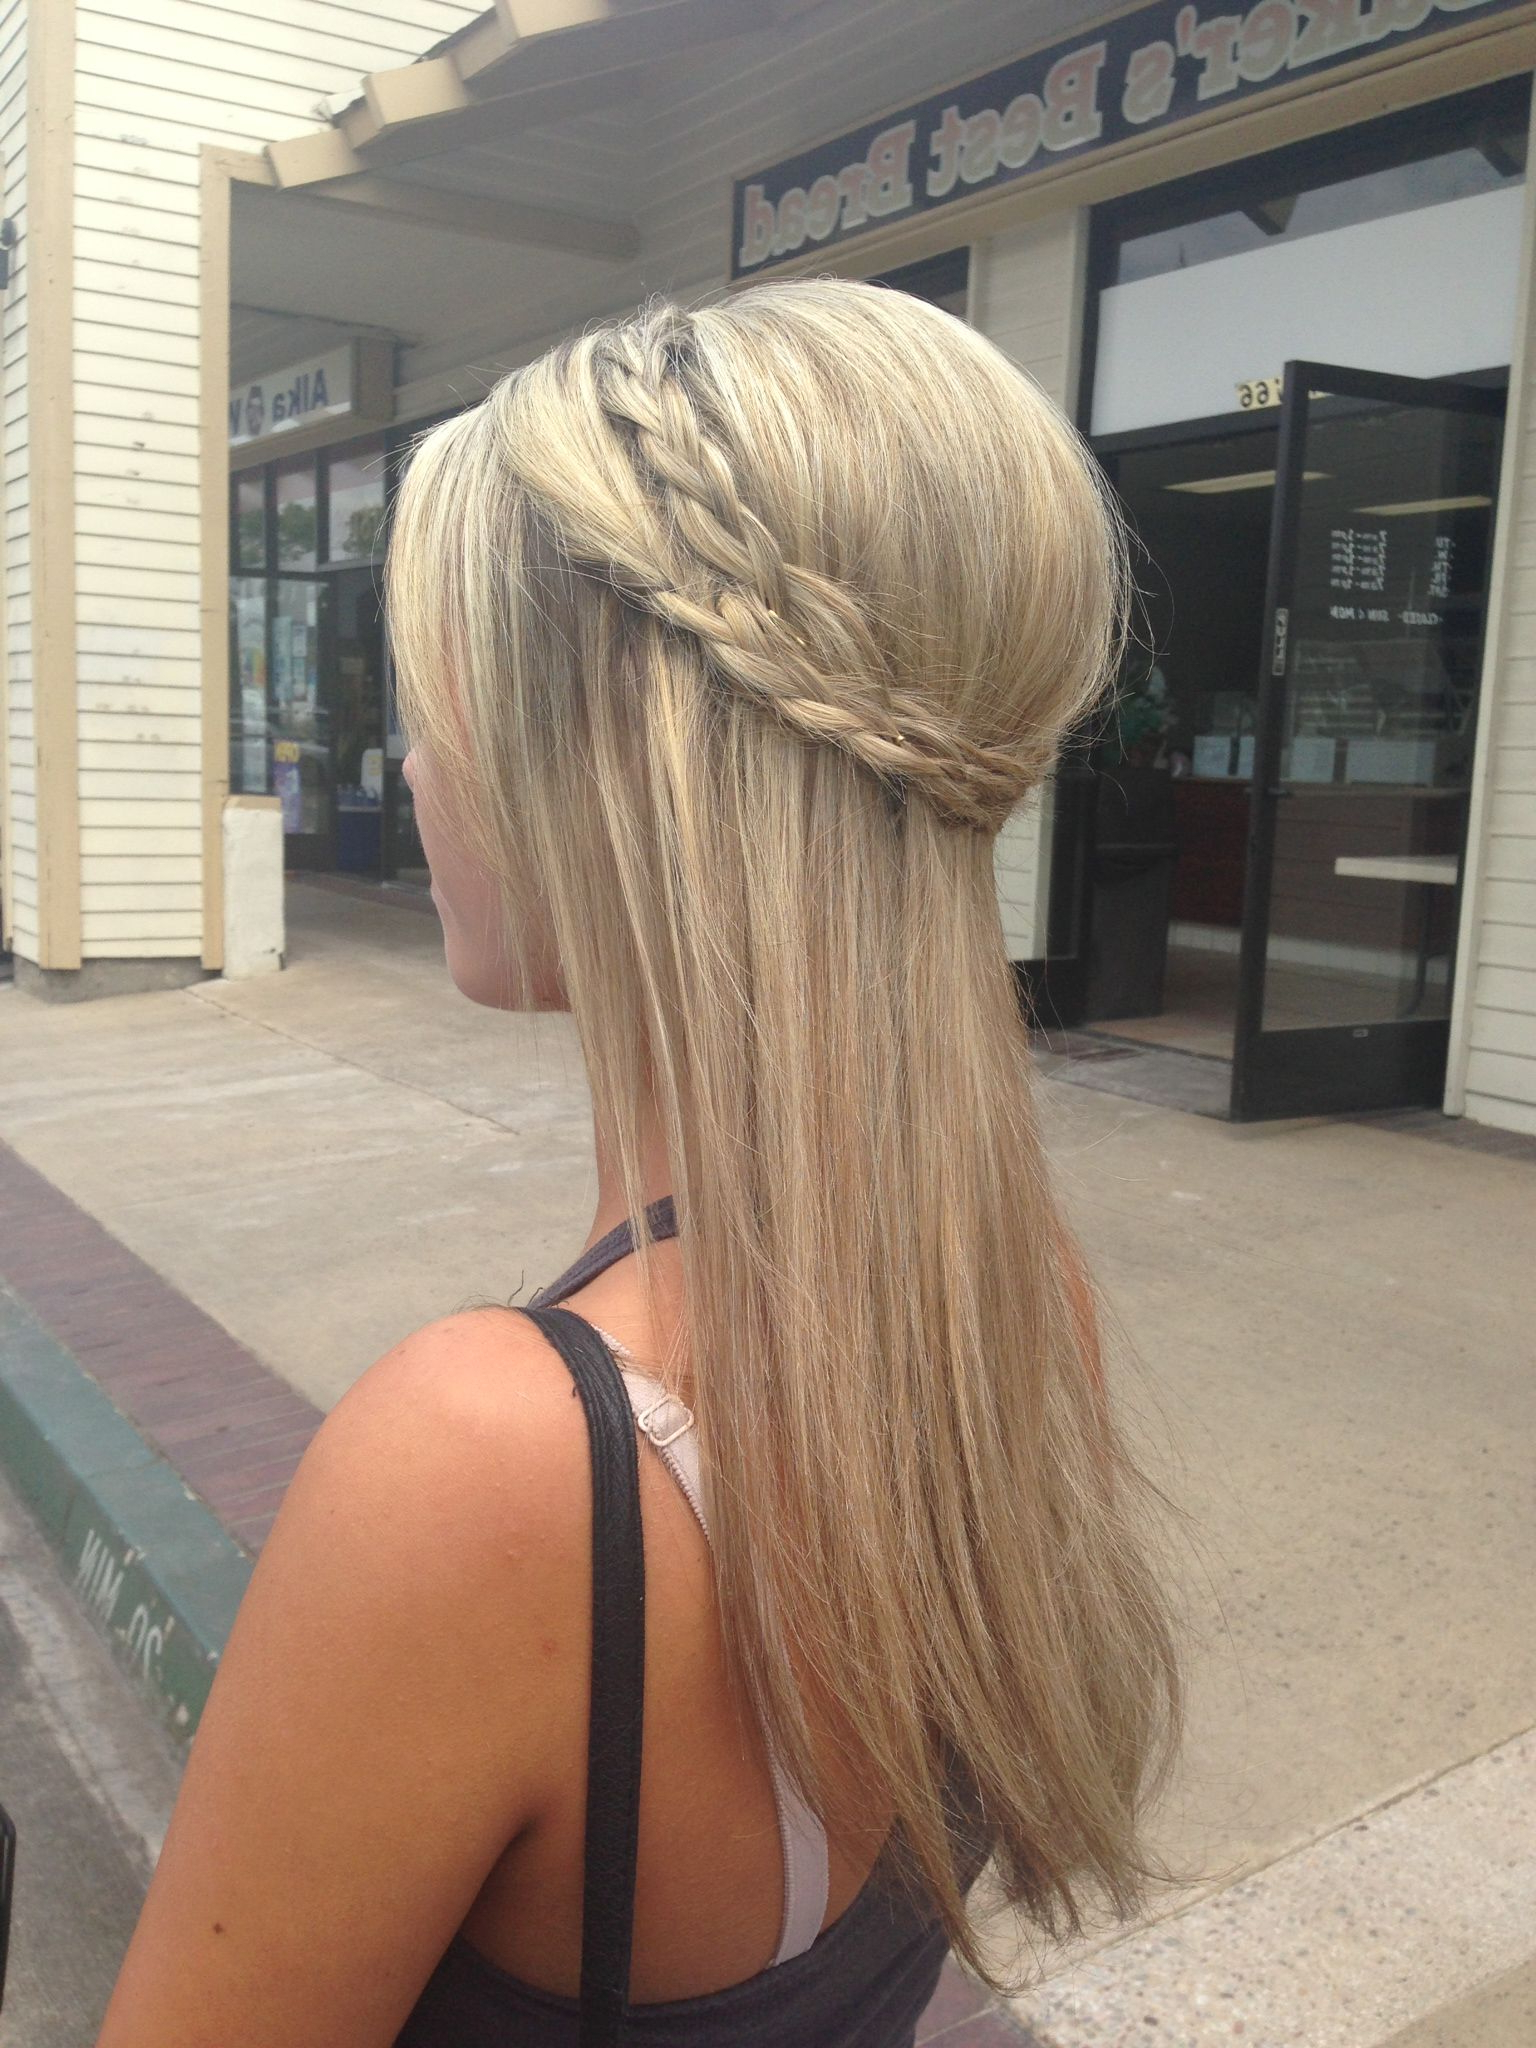 Hair Pertaining To Most Current Teased Prom Updos With Cute Headband (View 10 of 20)